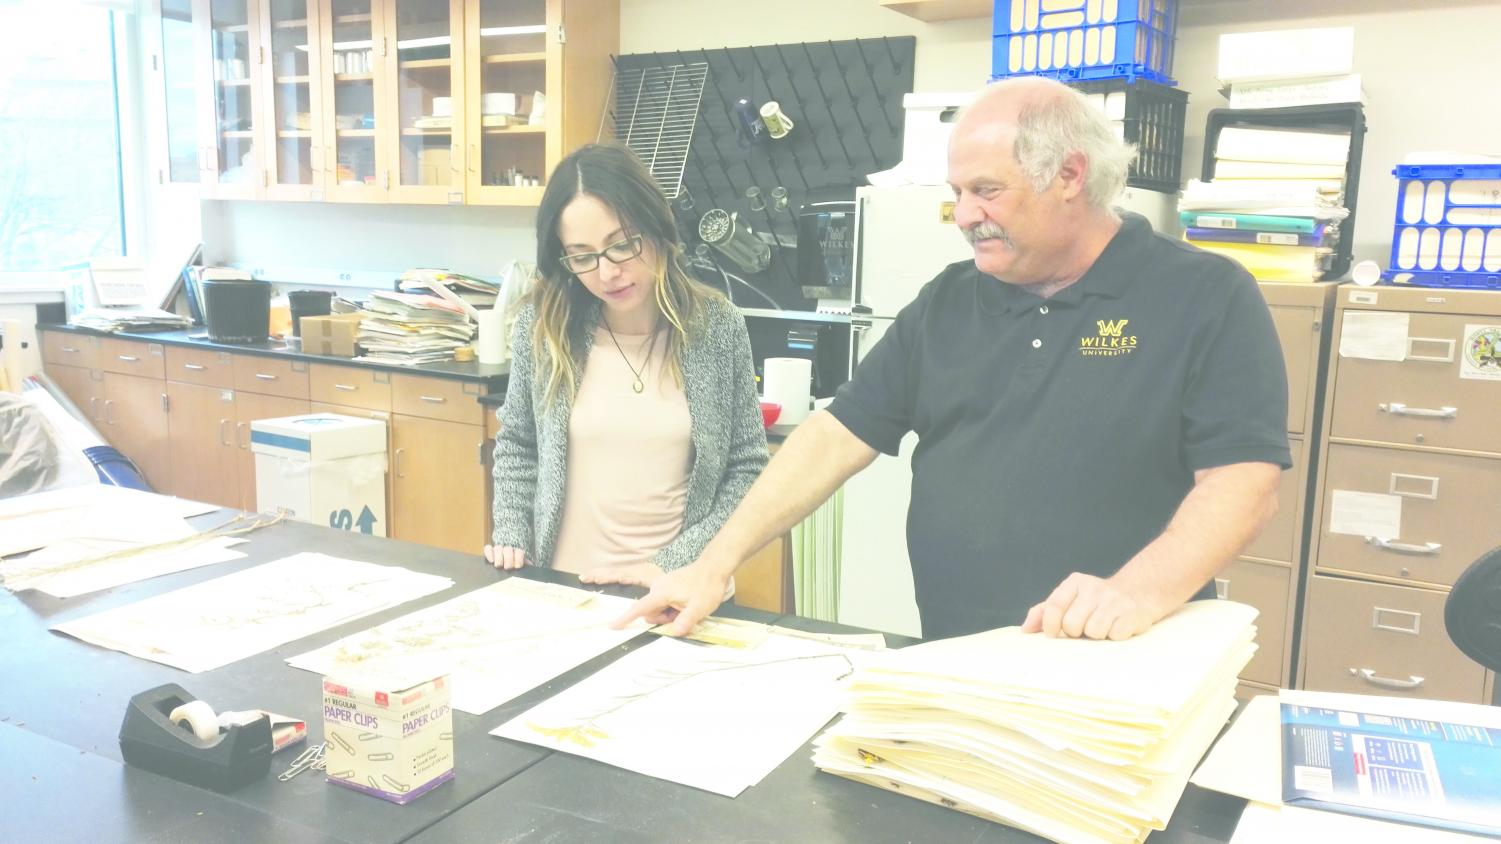 Laura Solomon, senior biology major, looking at the corydalis plant with Dr. Kenneth Klemow in the Herbarium.